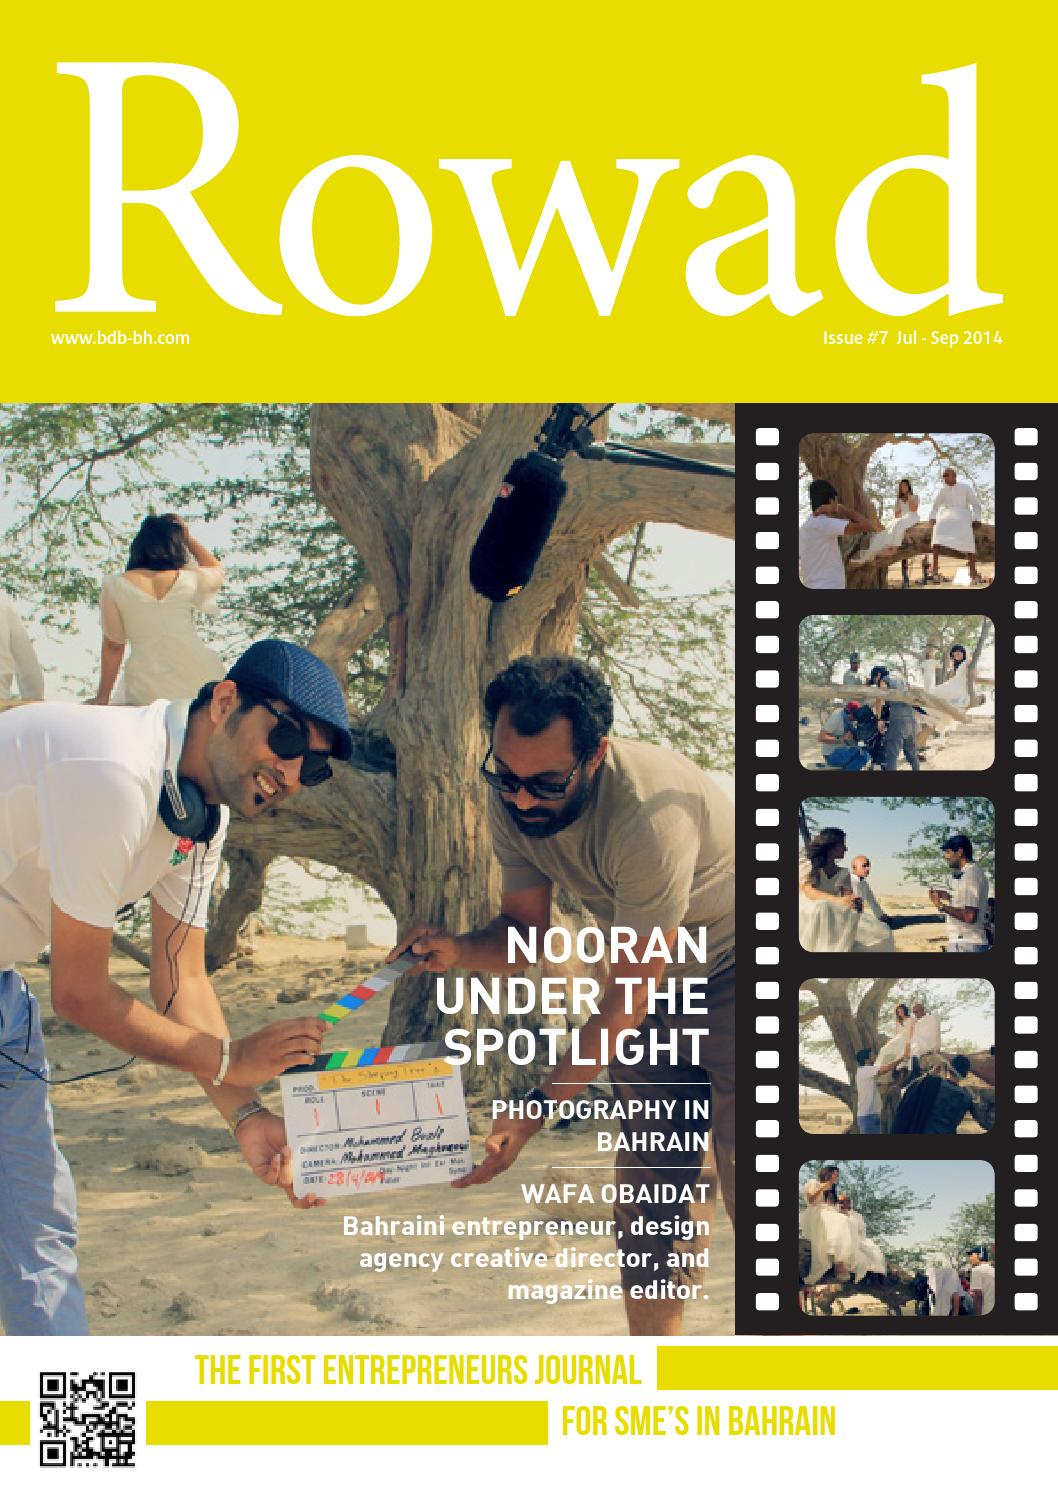 bf7b60a4b Rowad Magazine Issue #7 by Abdulrahman Al Jowder - issuu